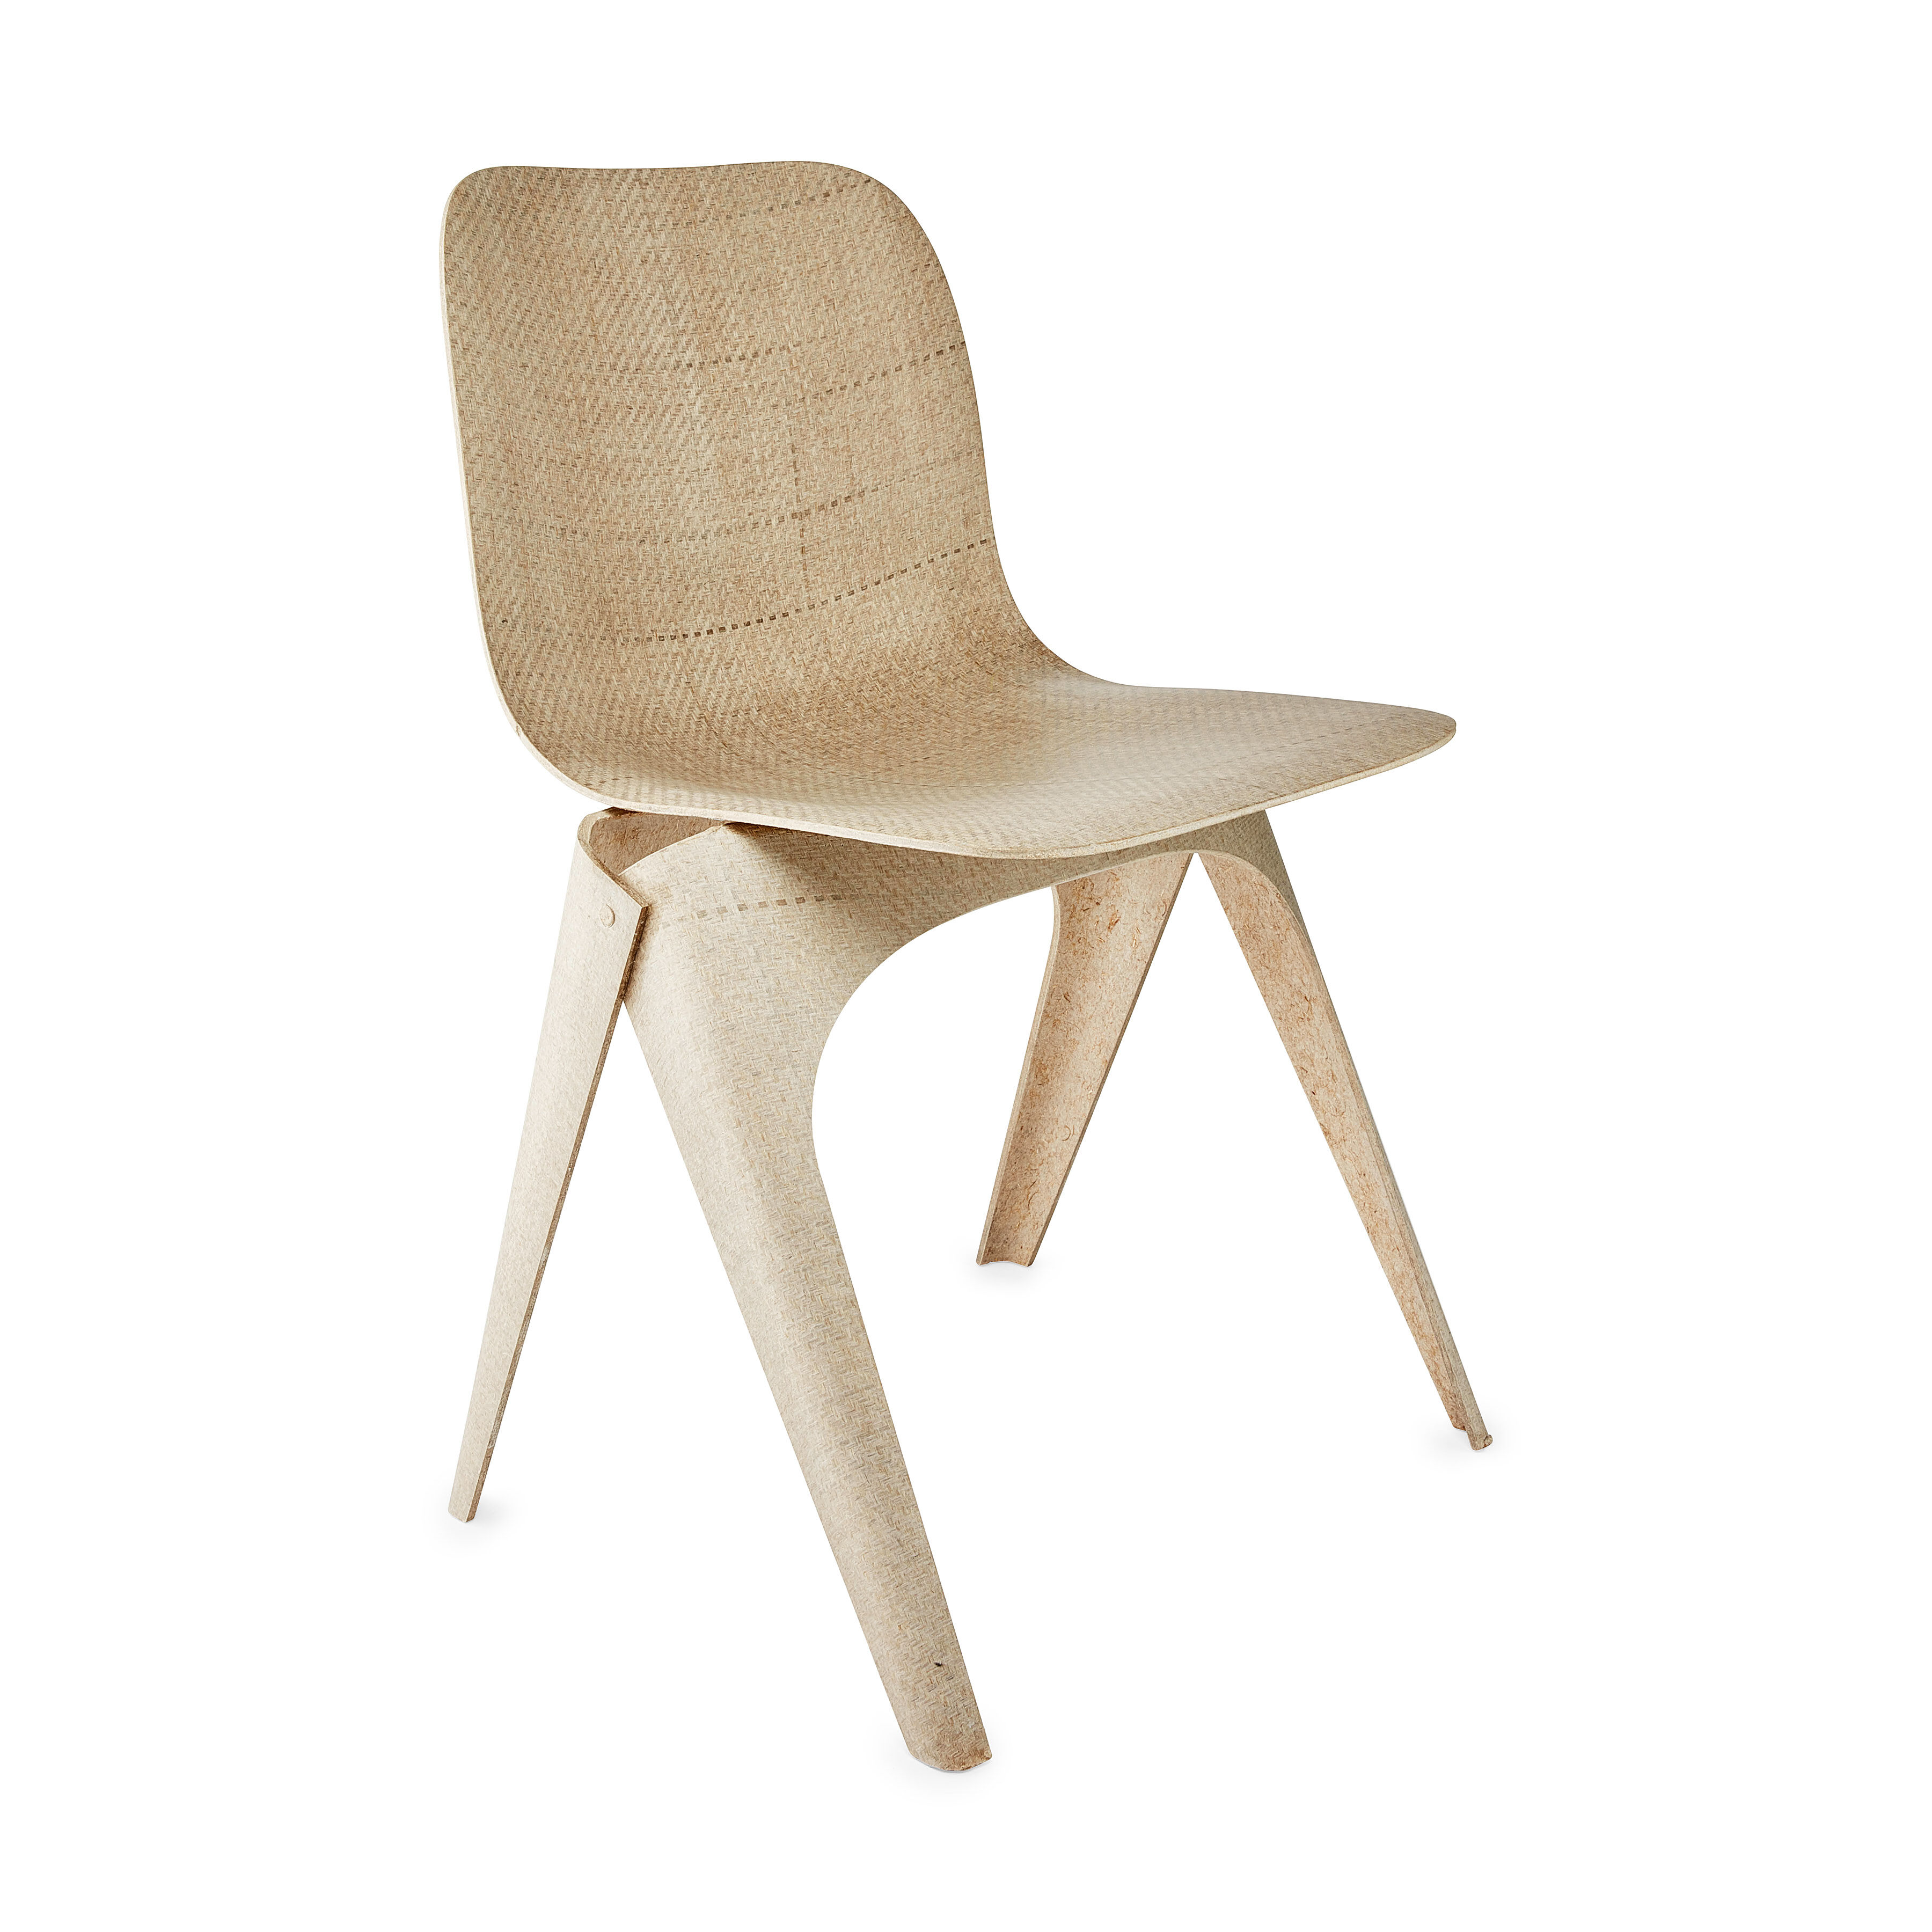 Merveilleux Flax Chair In Color